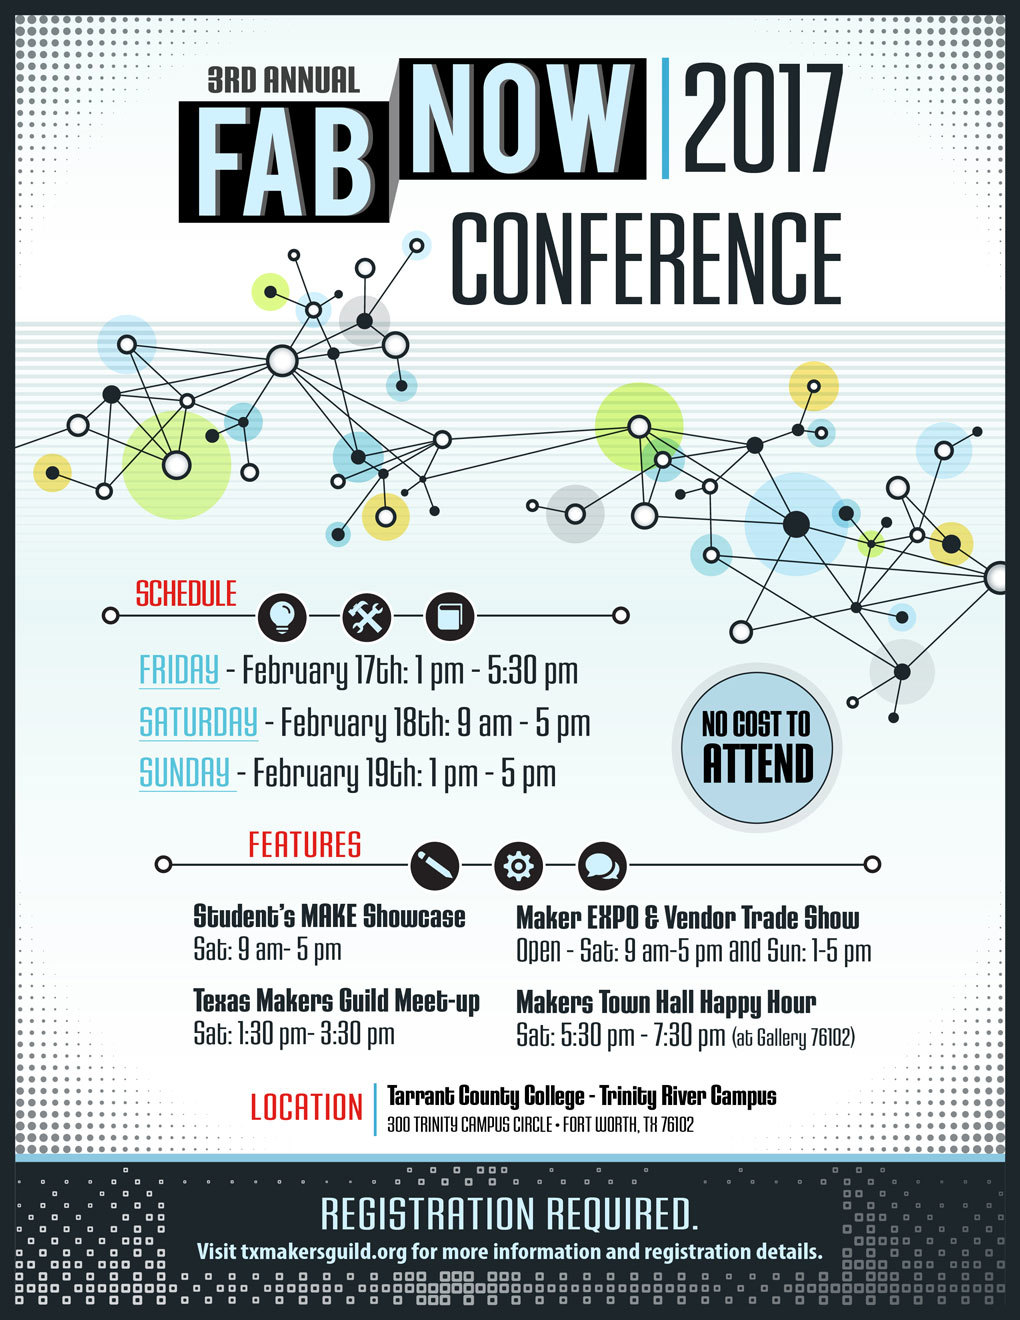 Free maker event this weekend starting today in ft worth fabnow fabnowconference2017flyerwebg1020x1320 275 kb registration thecheapjerseys Image collections